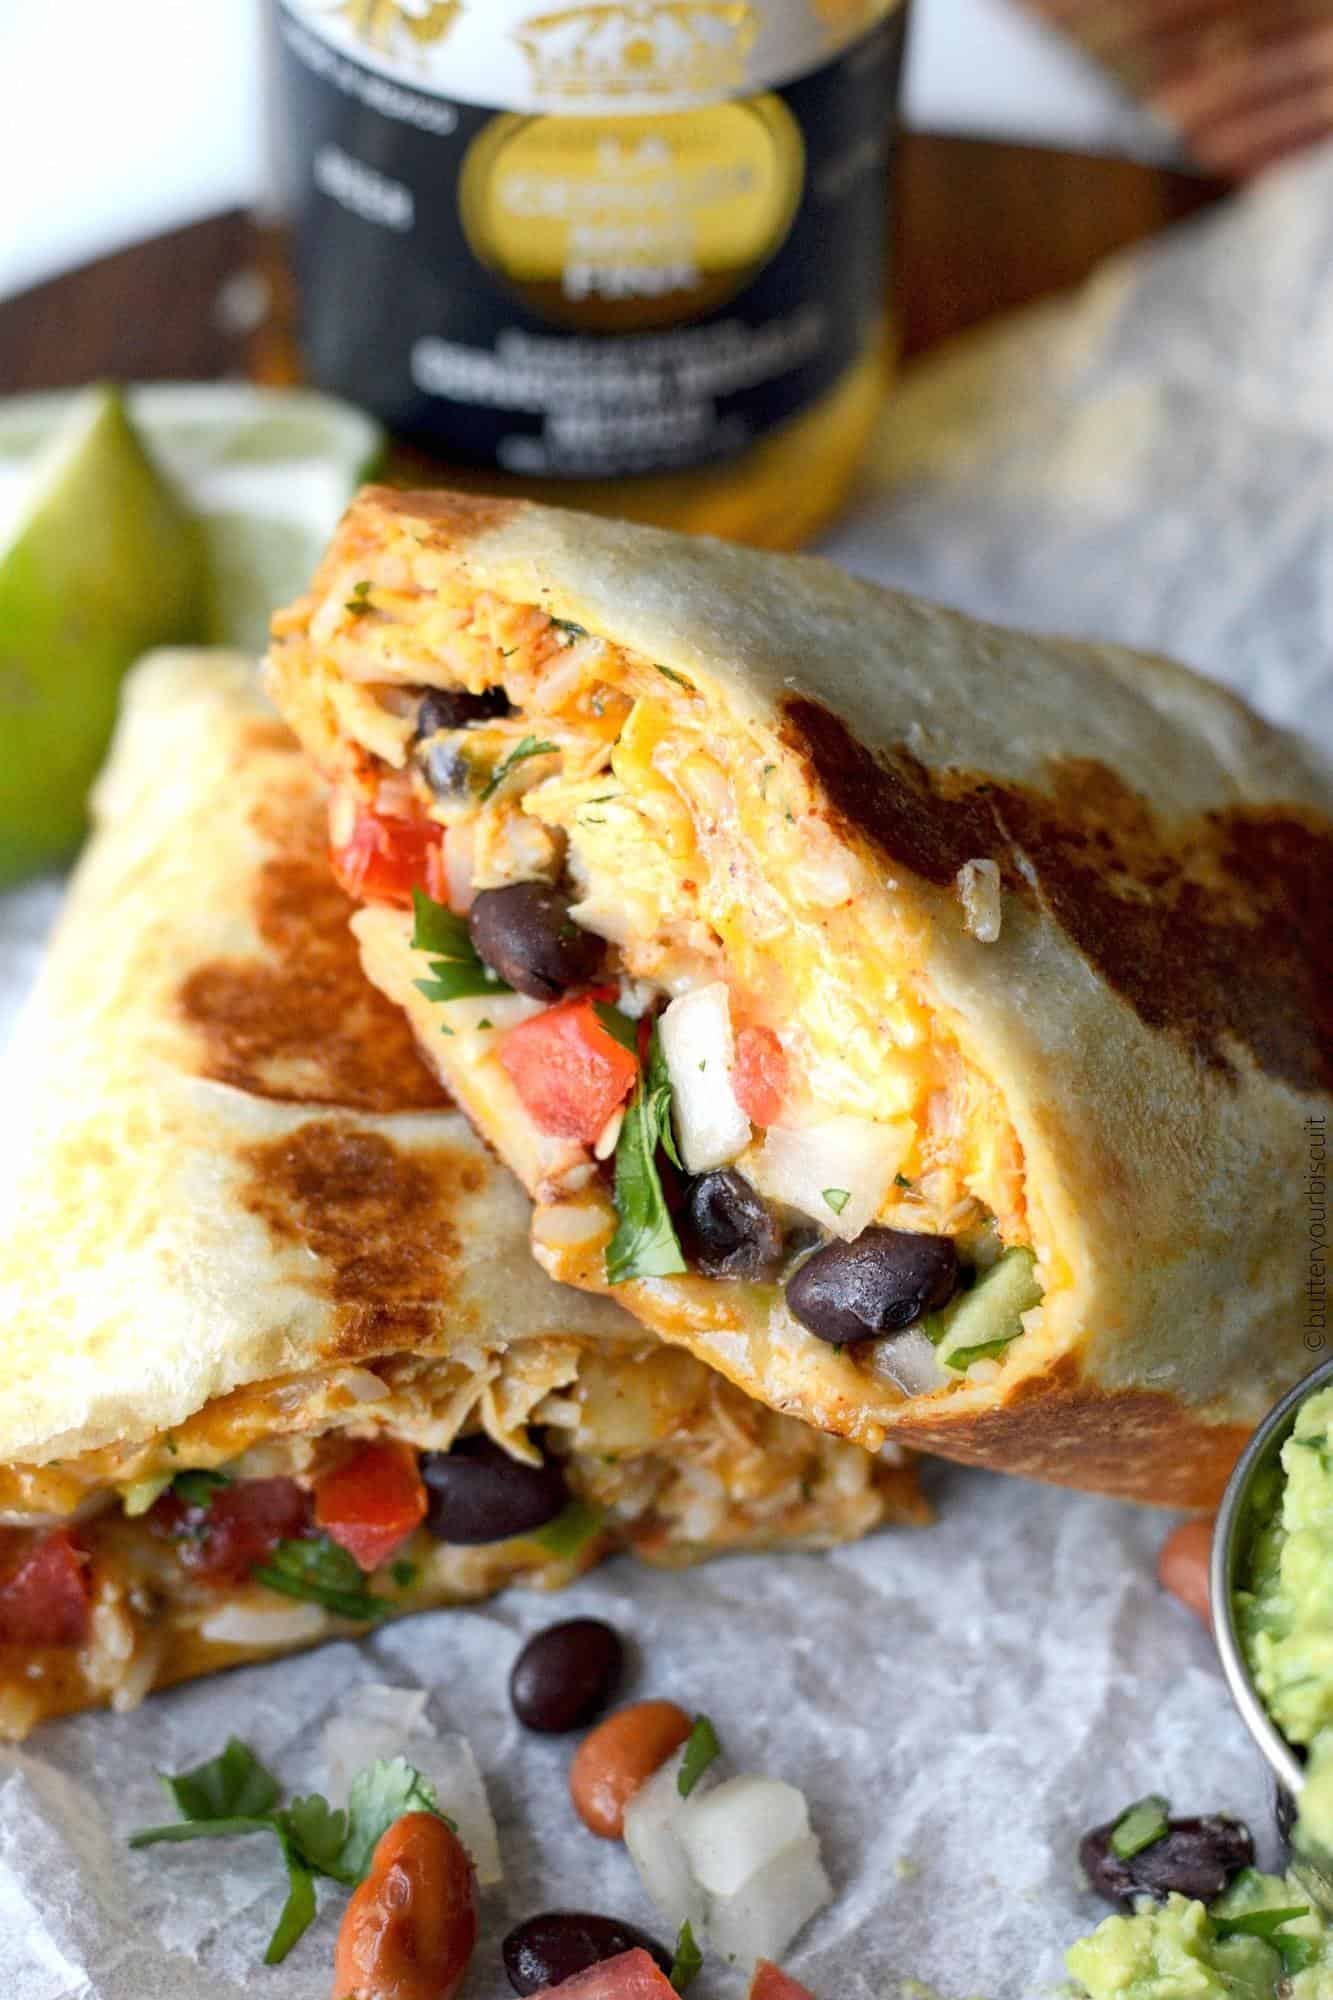 ... chicken burritos are probably one of my favorite quick and easy meals